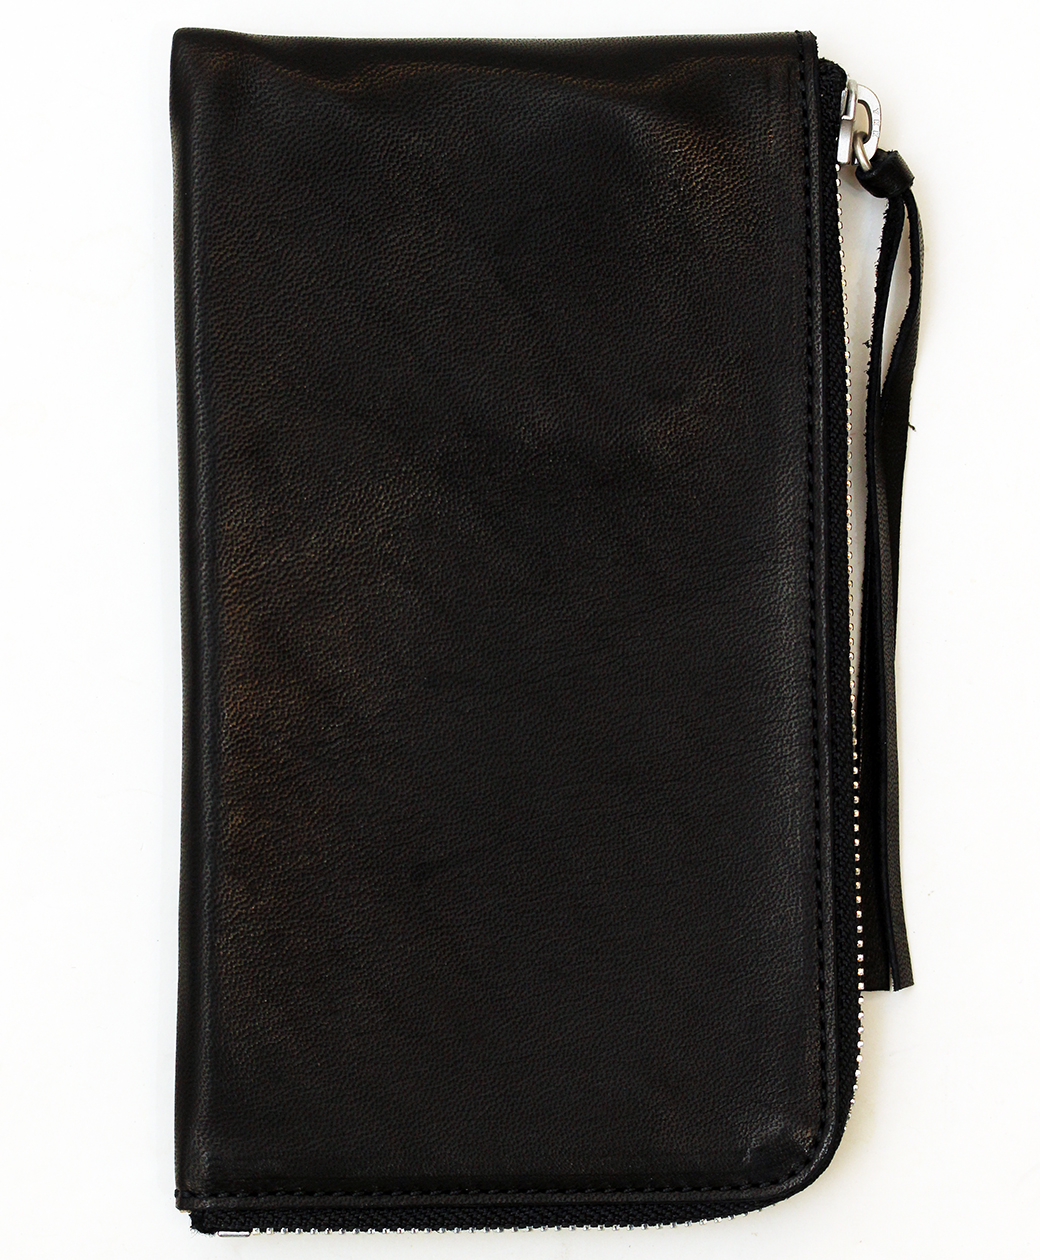 hobo HORSE LEATHER LONG ZIP WALLET(BLACK)